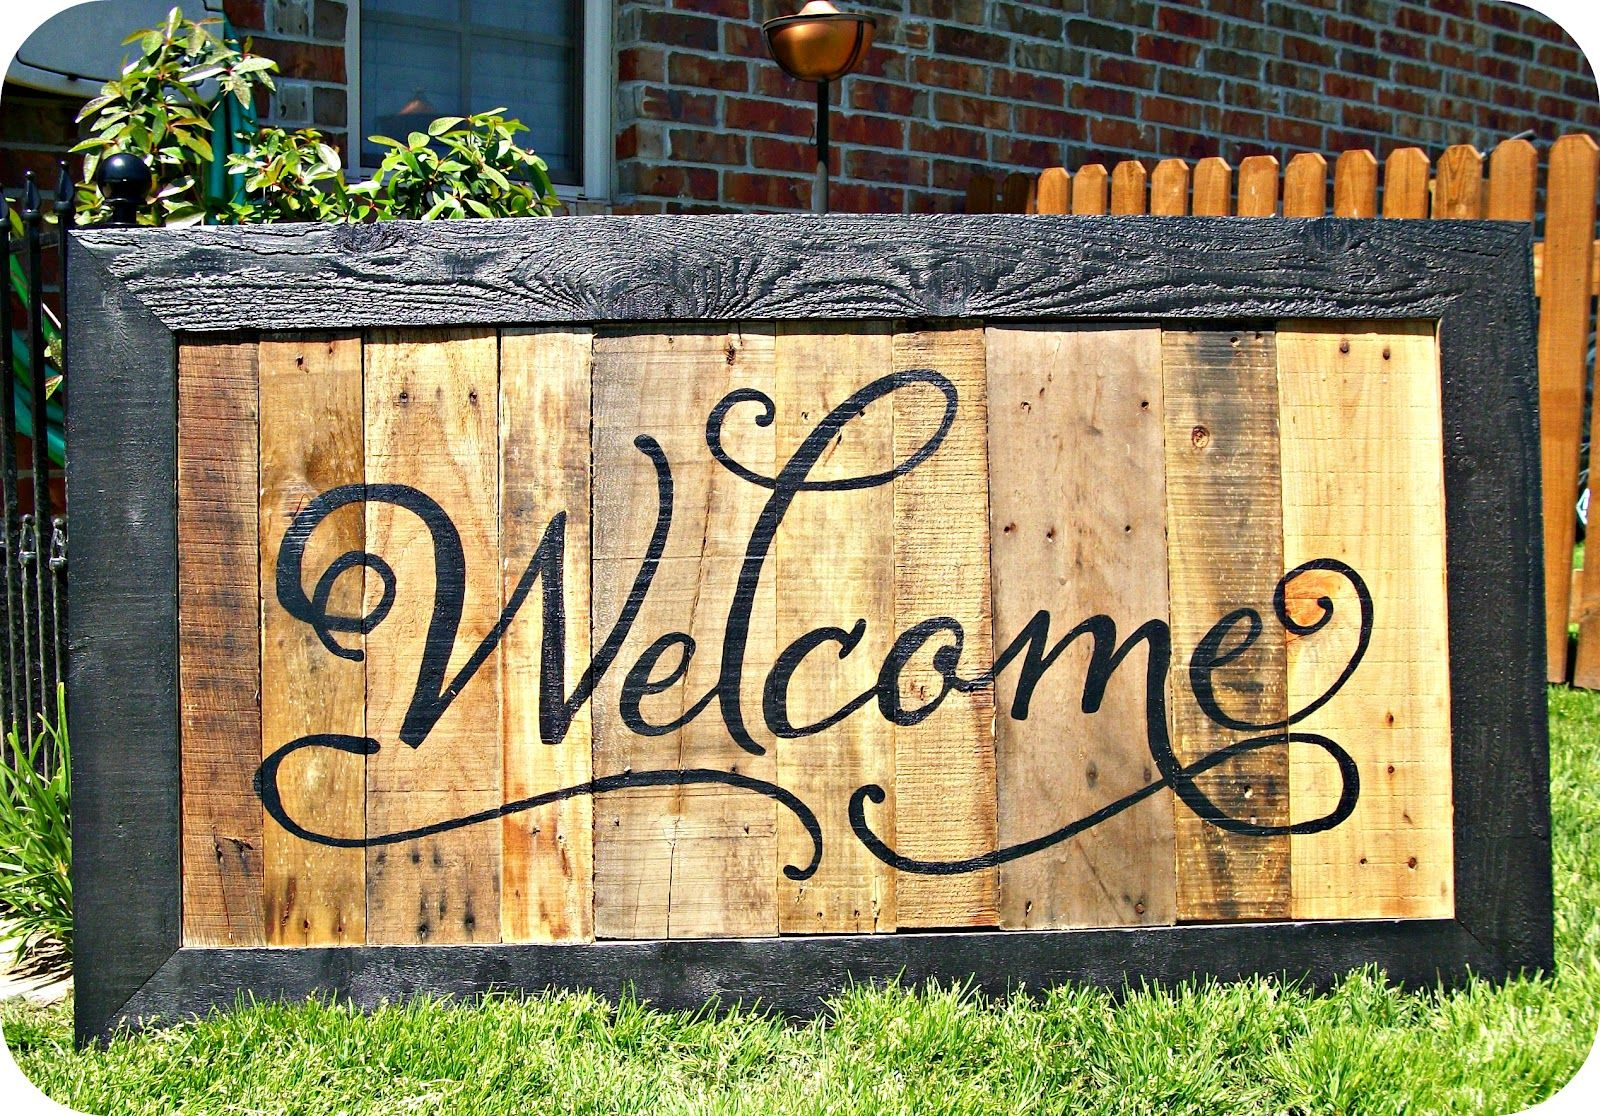 Wood Pallet Signs | ... our Welcome Friends & Family rustic porch ...